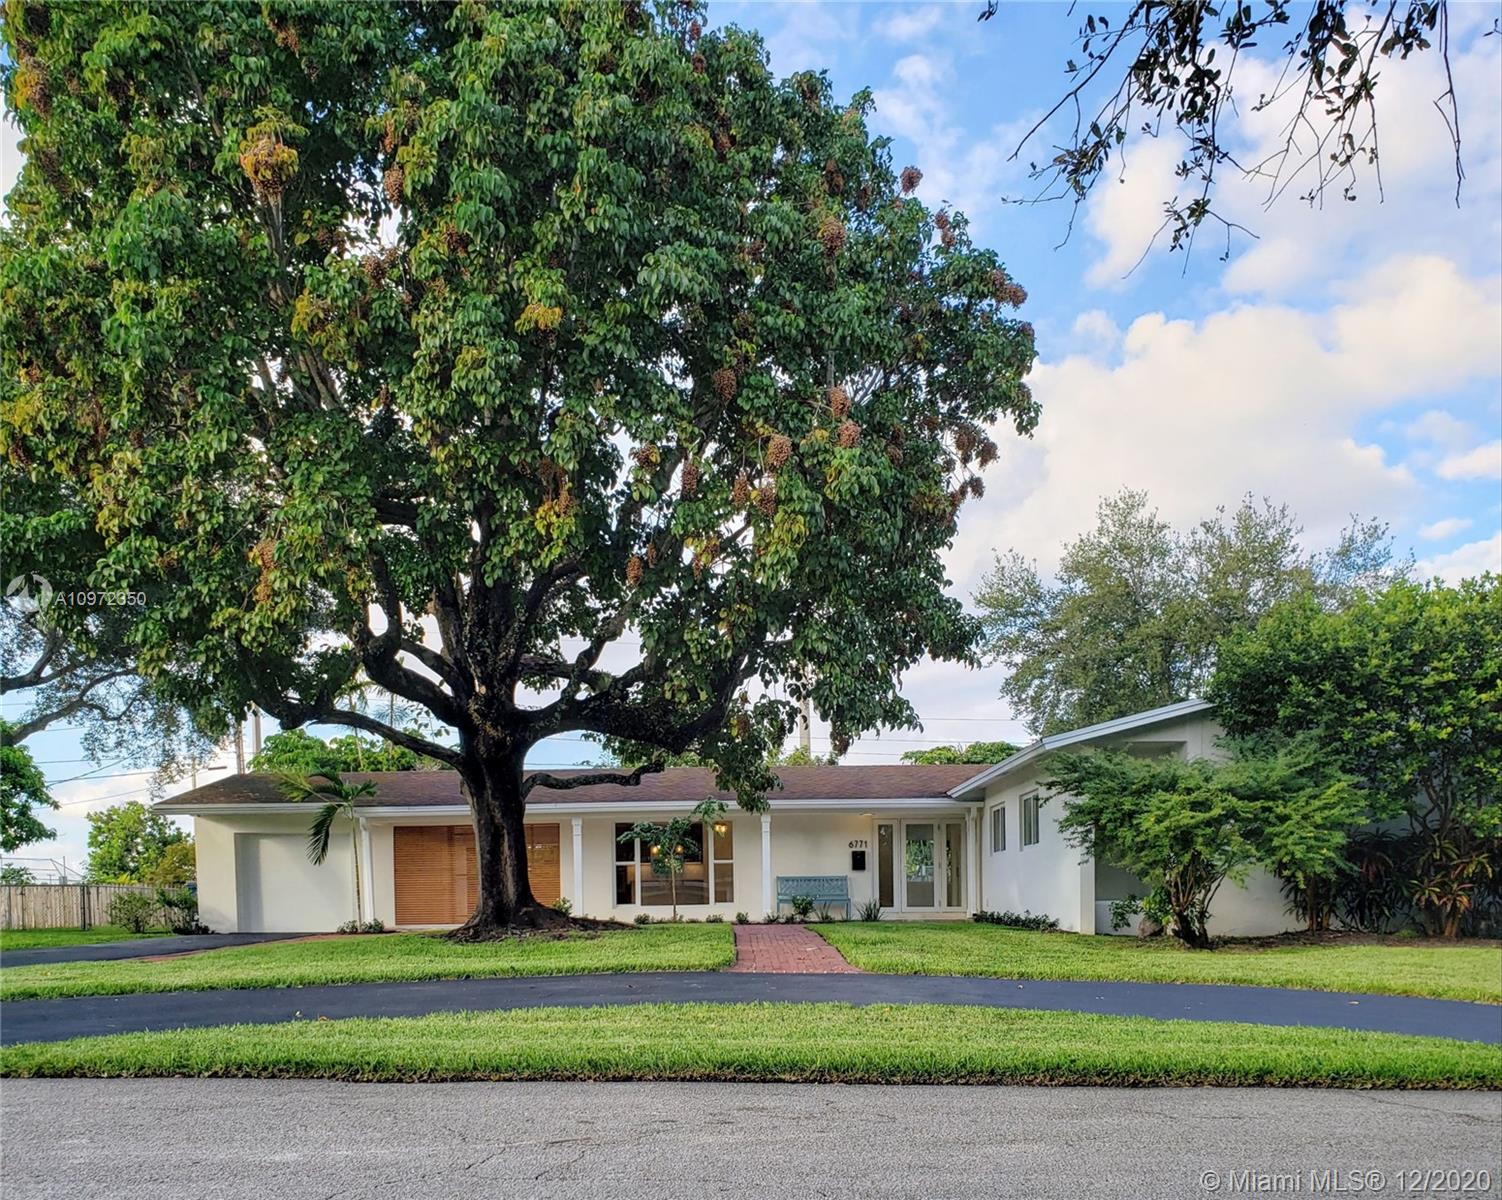 COMPLETELY REMODELED & MOVE-IN READY! 5 bed/3 bath meticulously renovated Jennings-built home on   quiet, no-through street in So. Miami's Ludlam Trail/St. Thomas the Apostle neighborhood. ALL NEW: impact windows/ doors, plumbing, electrical, A/C ducts, kitchen, baths, pool equip., irrigation sys., alarm, landscaping, appliances, & closet systems. A/C is 2 yrs old, roof is 11 yrs old & in great condition. Spacious 12,500 sq ft lot w/ mature trees & fenced backyard w/ direct yet private access to So. Miami's expansive Palmer Park & playground. Located w/in 10 MINUTES OR LESS to 3 hospitals, the much-anticipated Ludlam Trail, highly-rated schools, the Univ. of Miami, city centers of South Miami & Coral Gables, parks, premier shopping, expressways. Showings by appt. Listed by Agent/Owner.